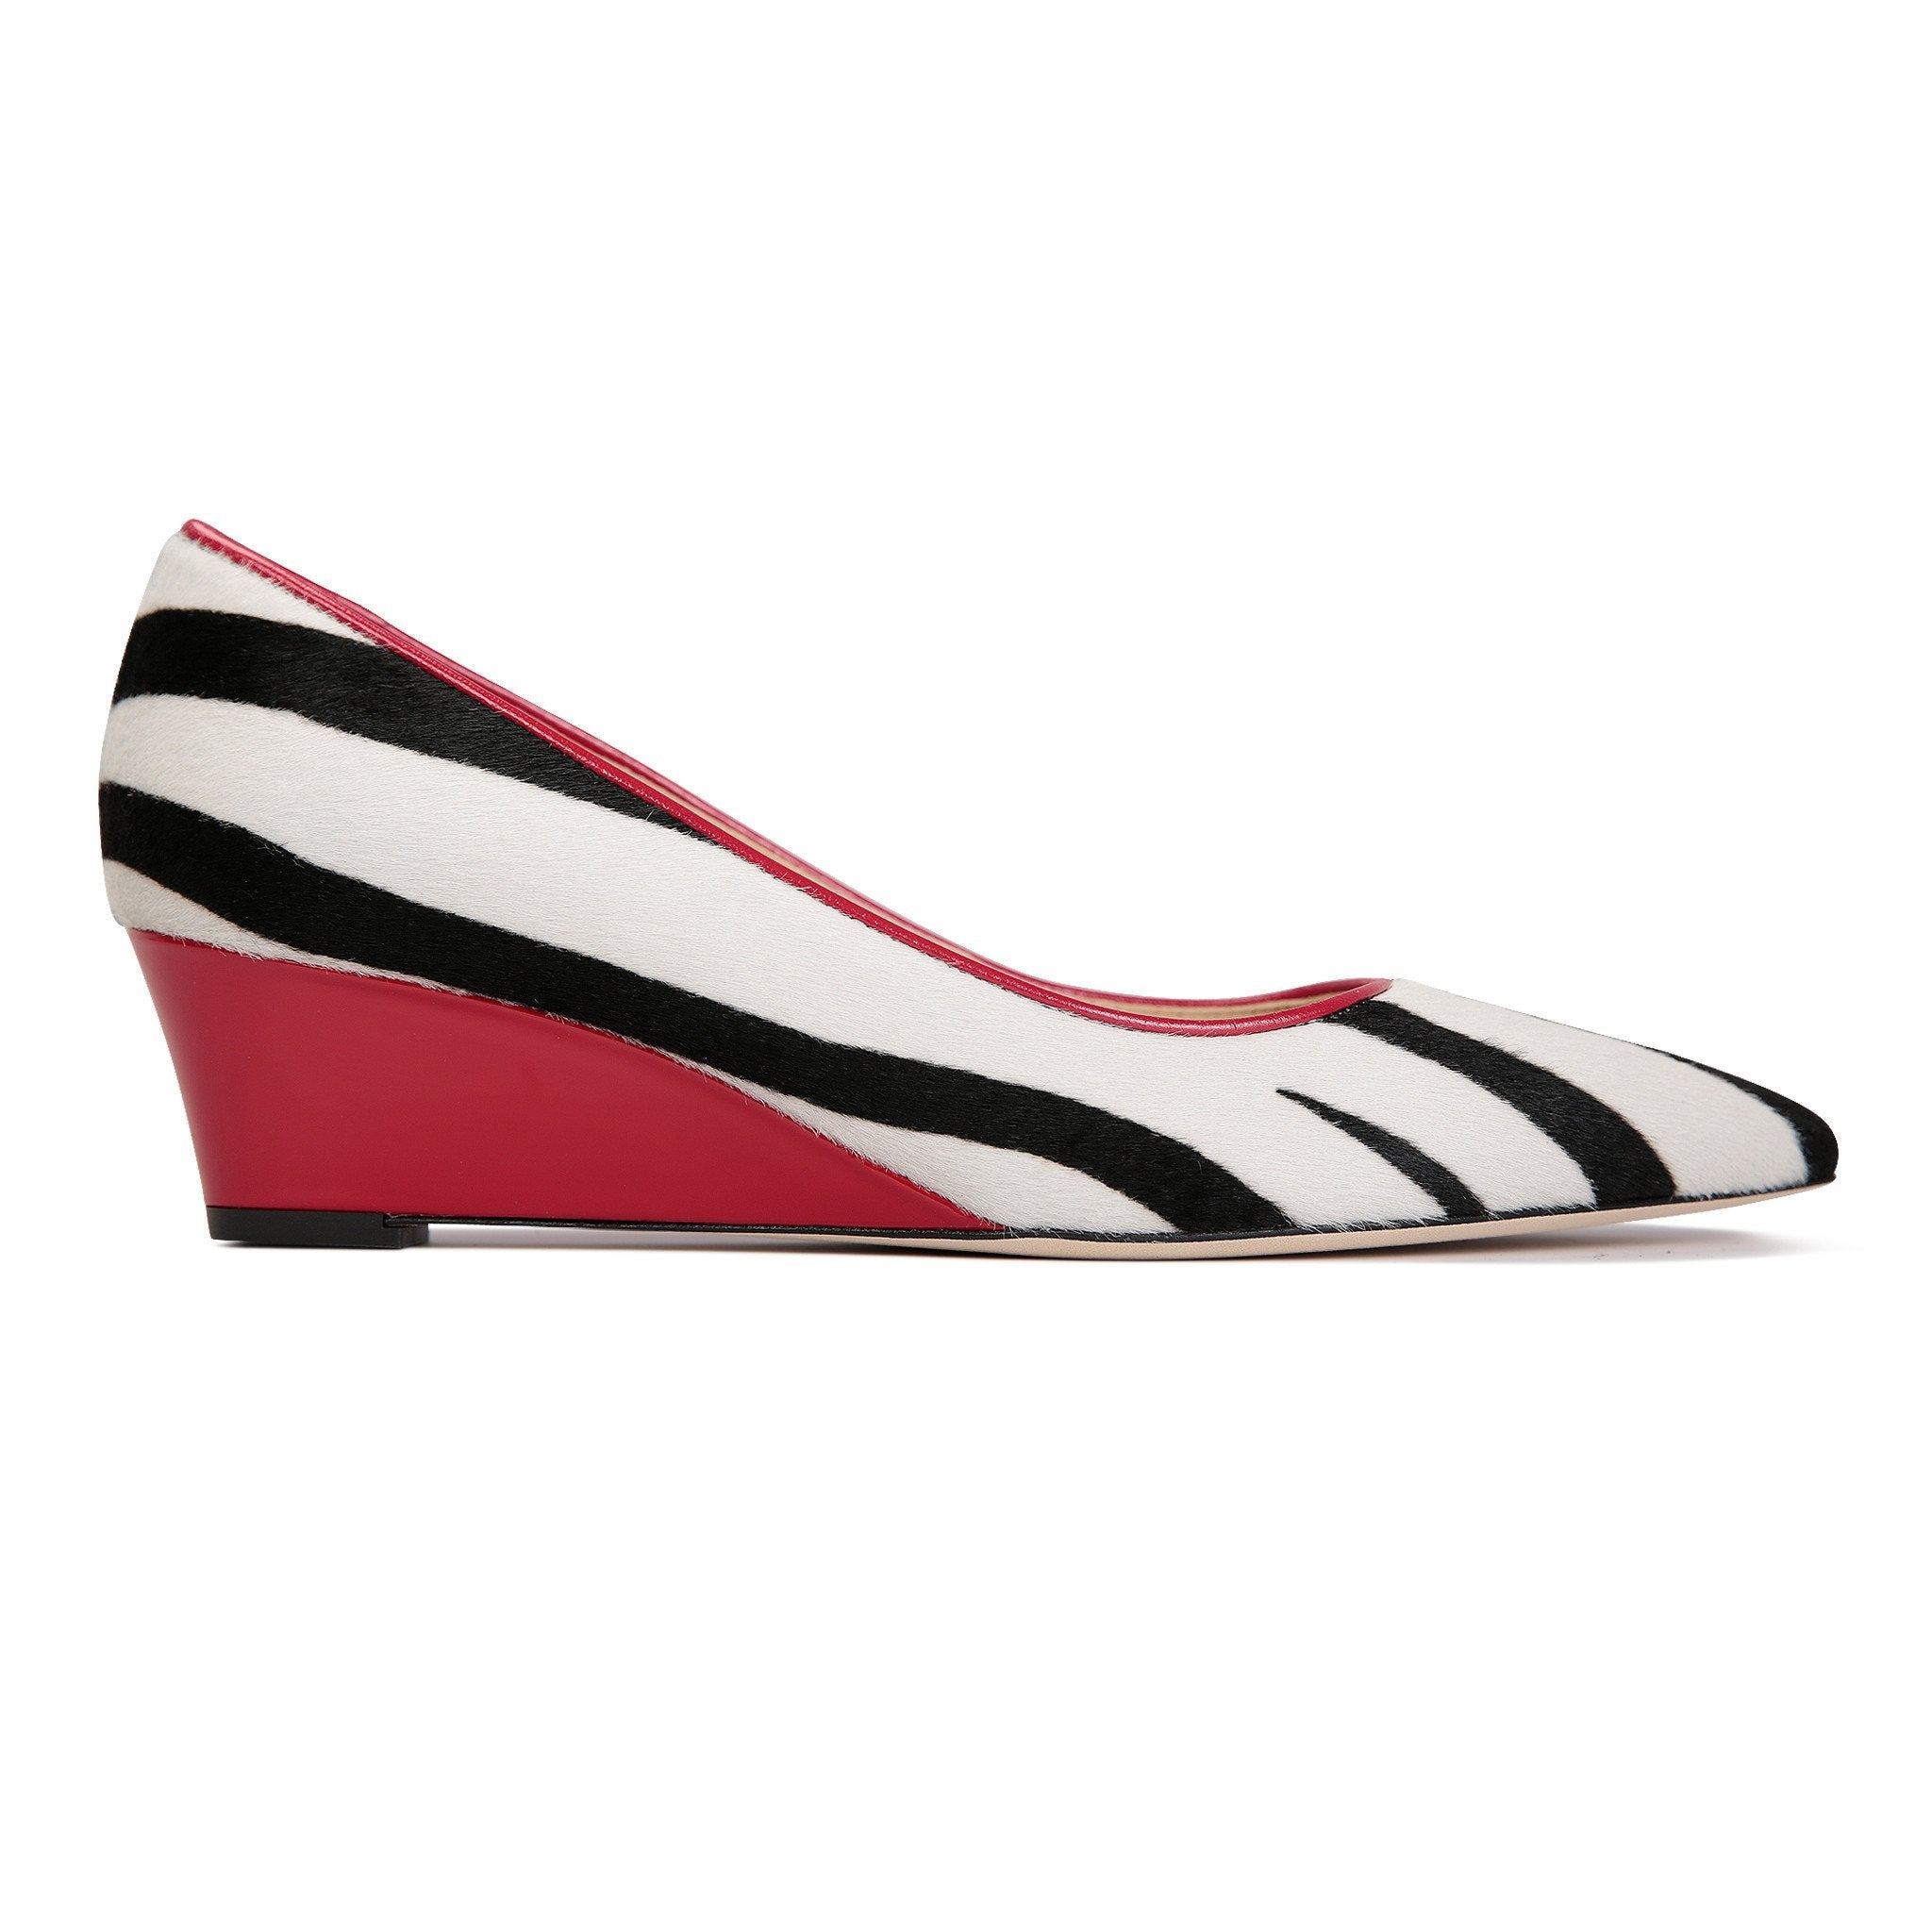 TRENTO - Calf Hair Zebra + Patent Rosso, VIAJIYU - Women's Hand Made Sustainable Luxury Shoes. Made in Italy. Made to Order.